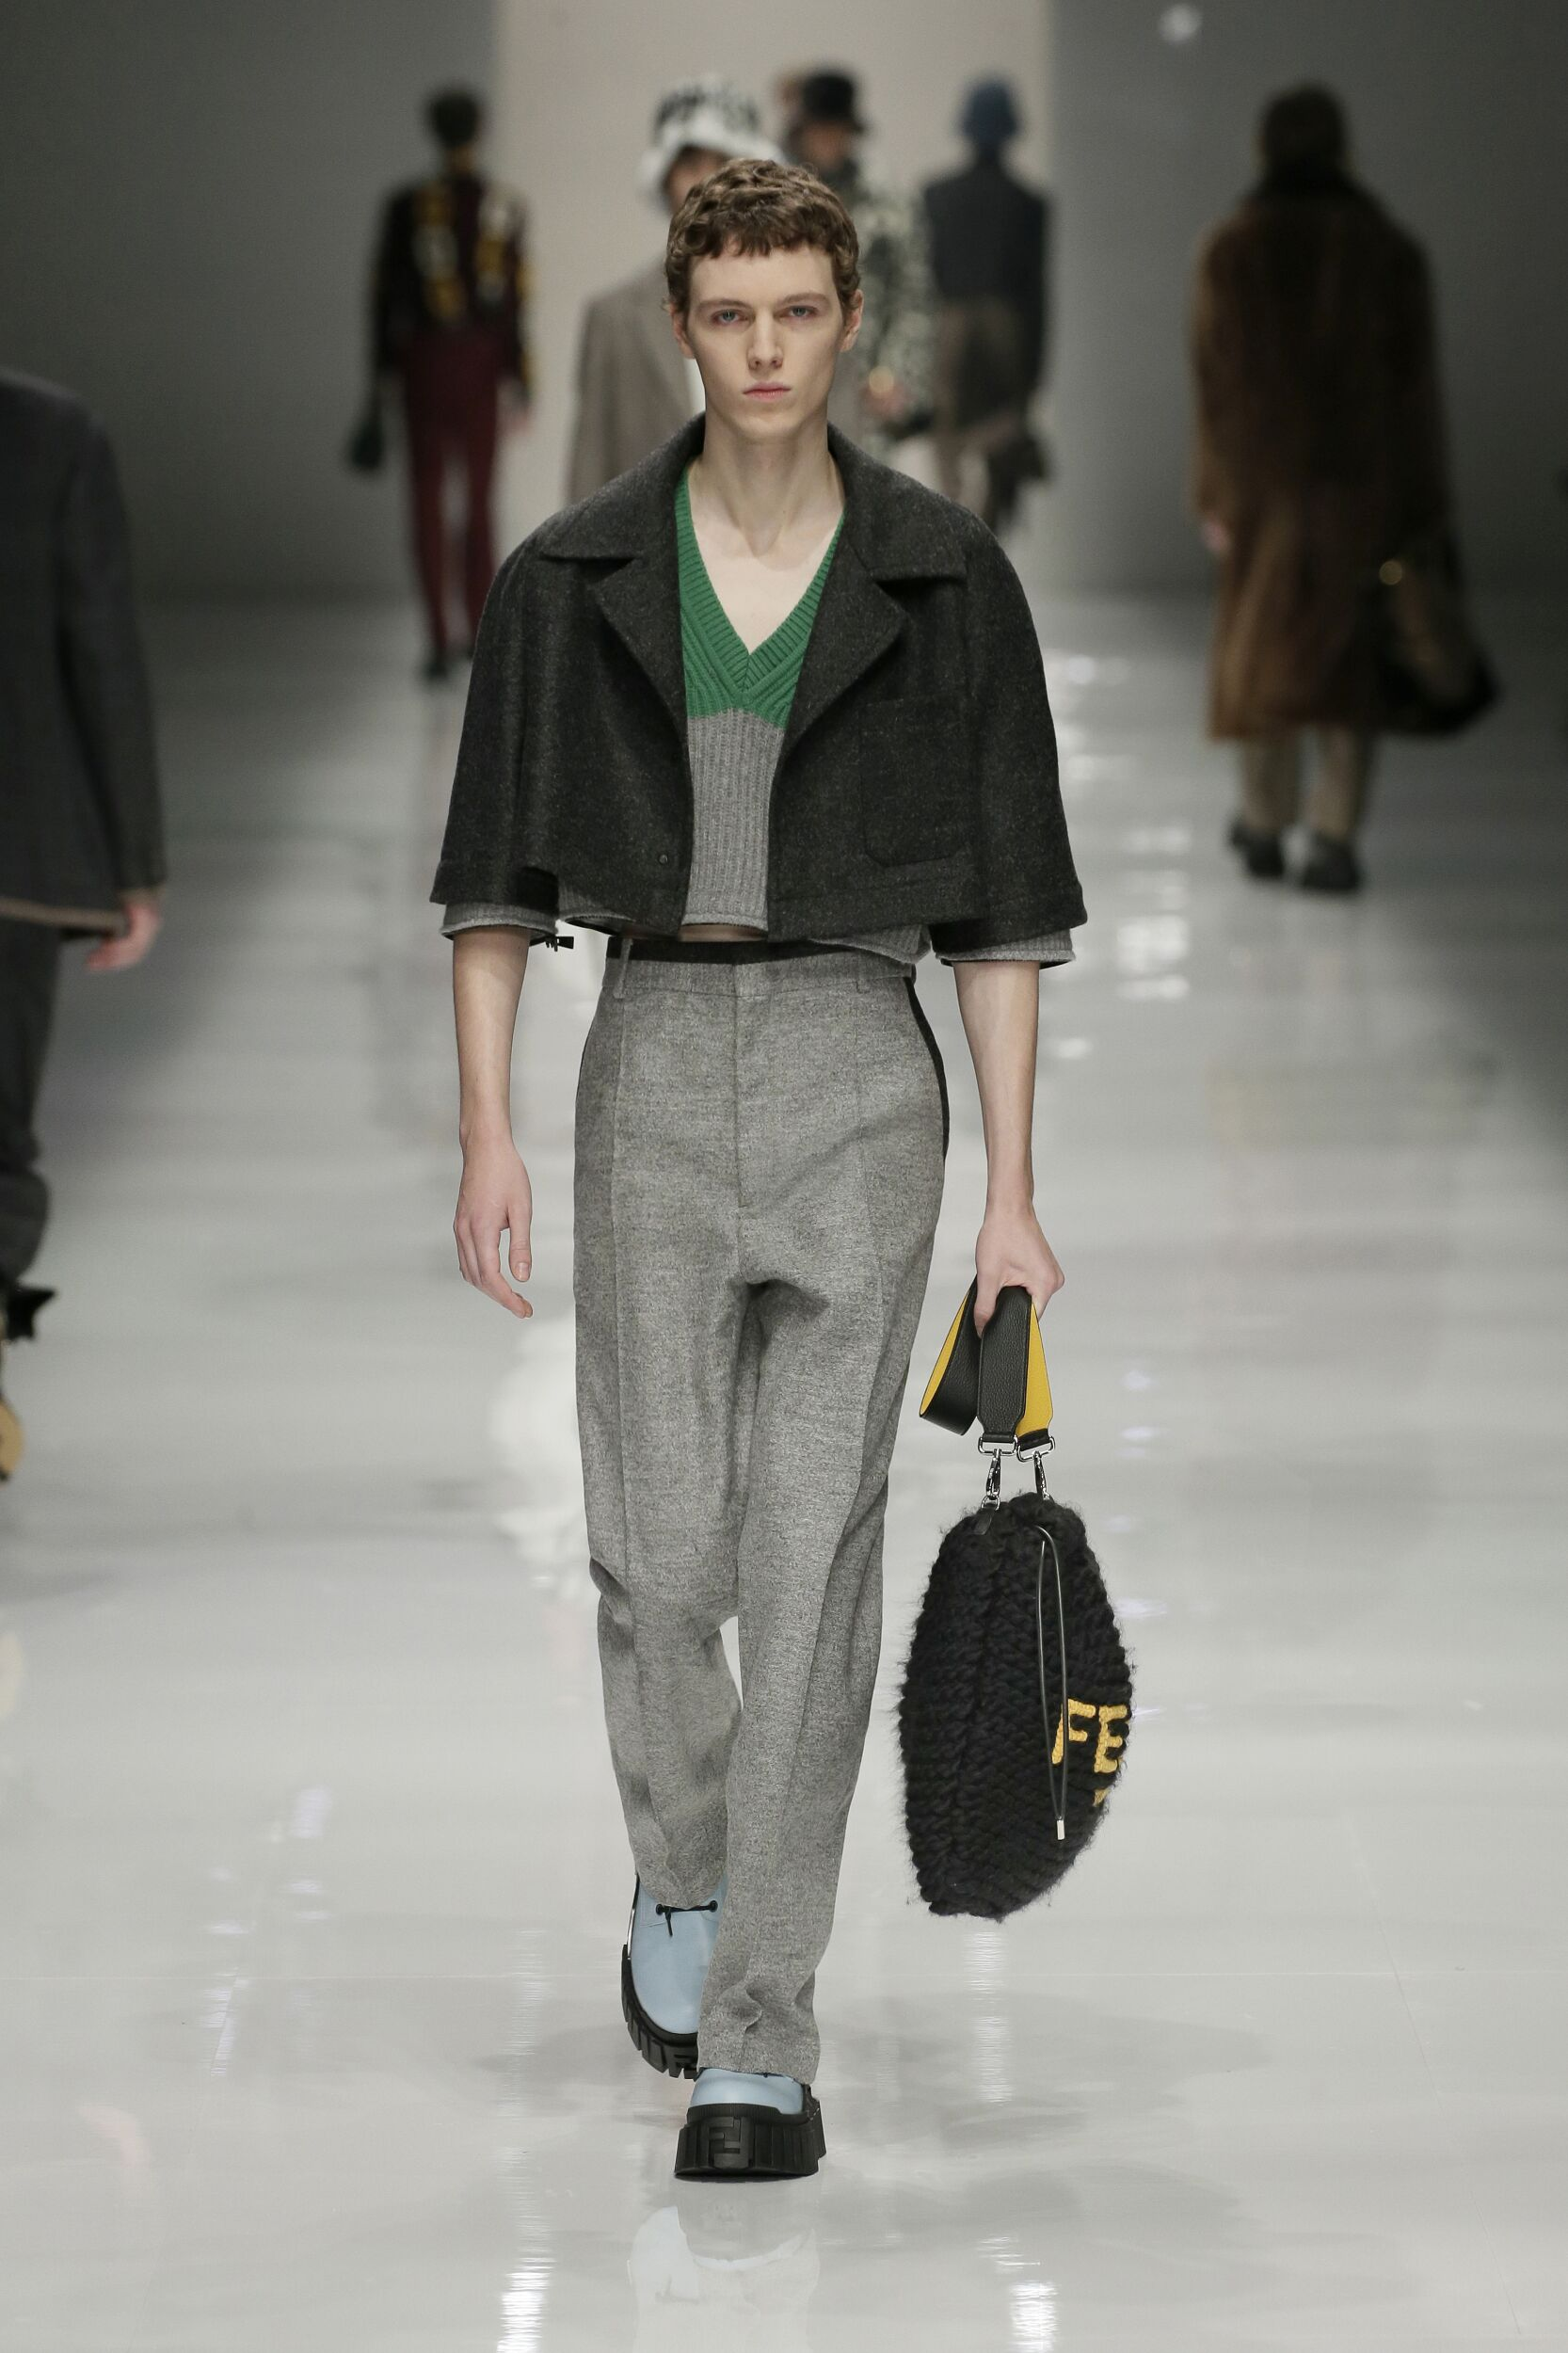 Catwalk Fendi Man Fashion Show Winter 2020